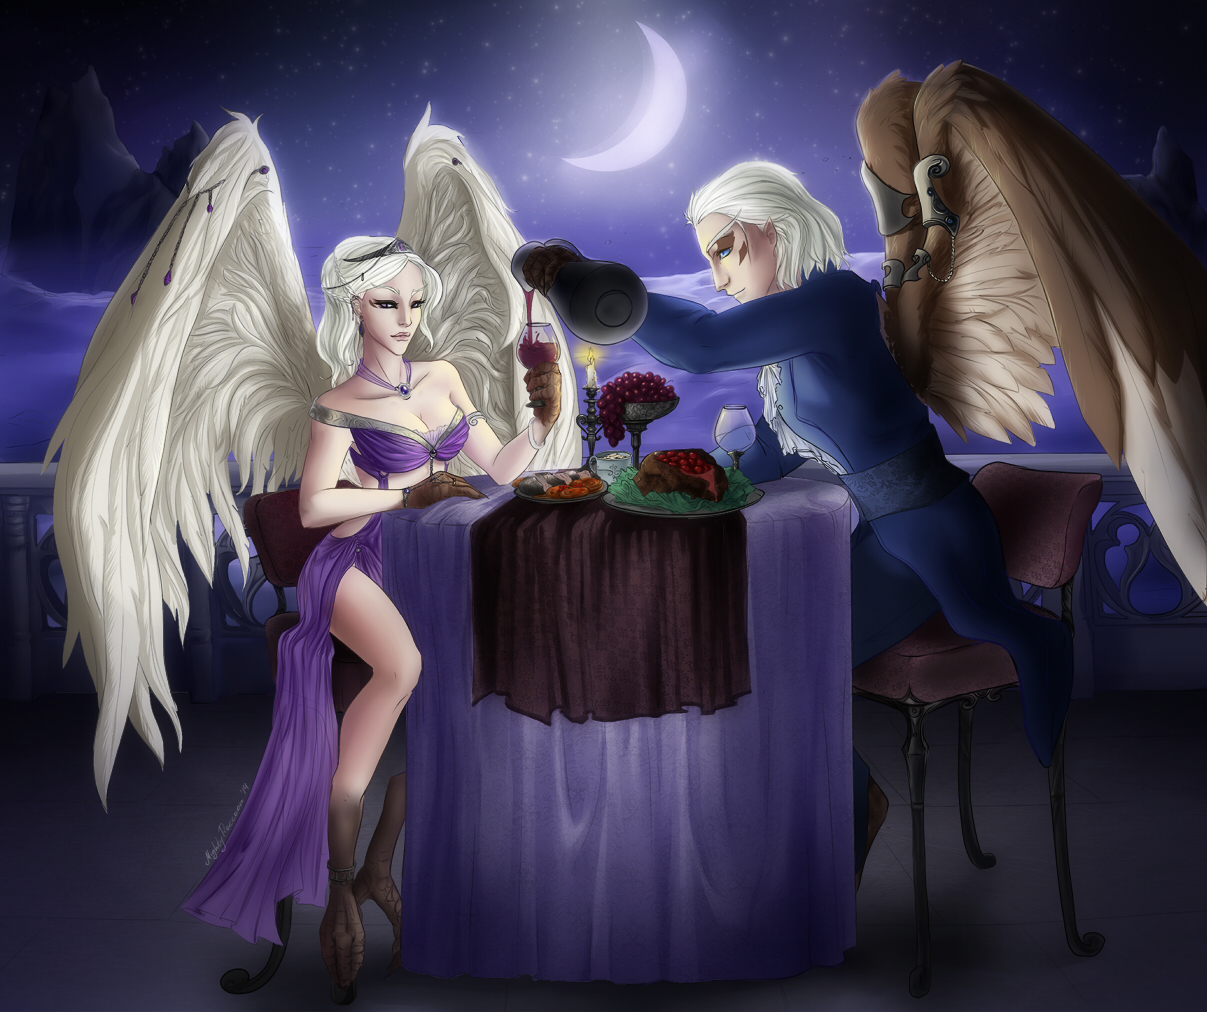 http://orig05.deviantart.net/f455/f/2014/260/f/1/eyrie_dinner_copyright_by_mightyraccoon-d7zii3u.jpg